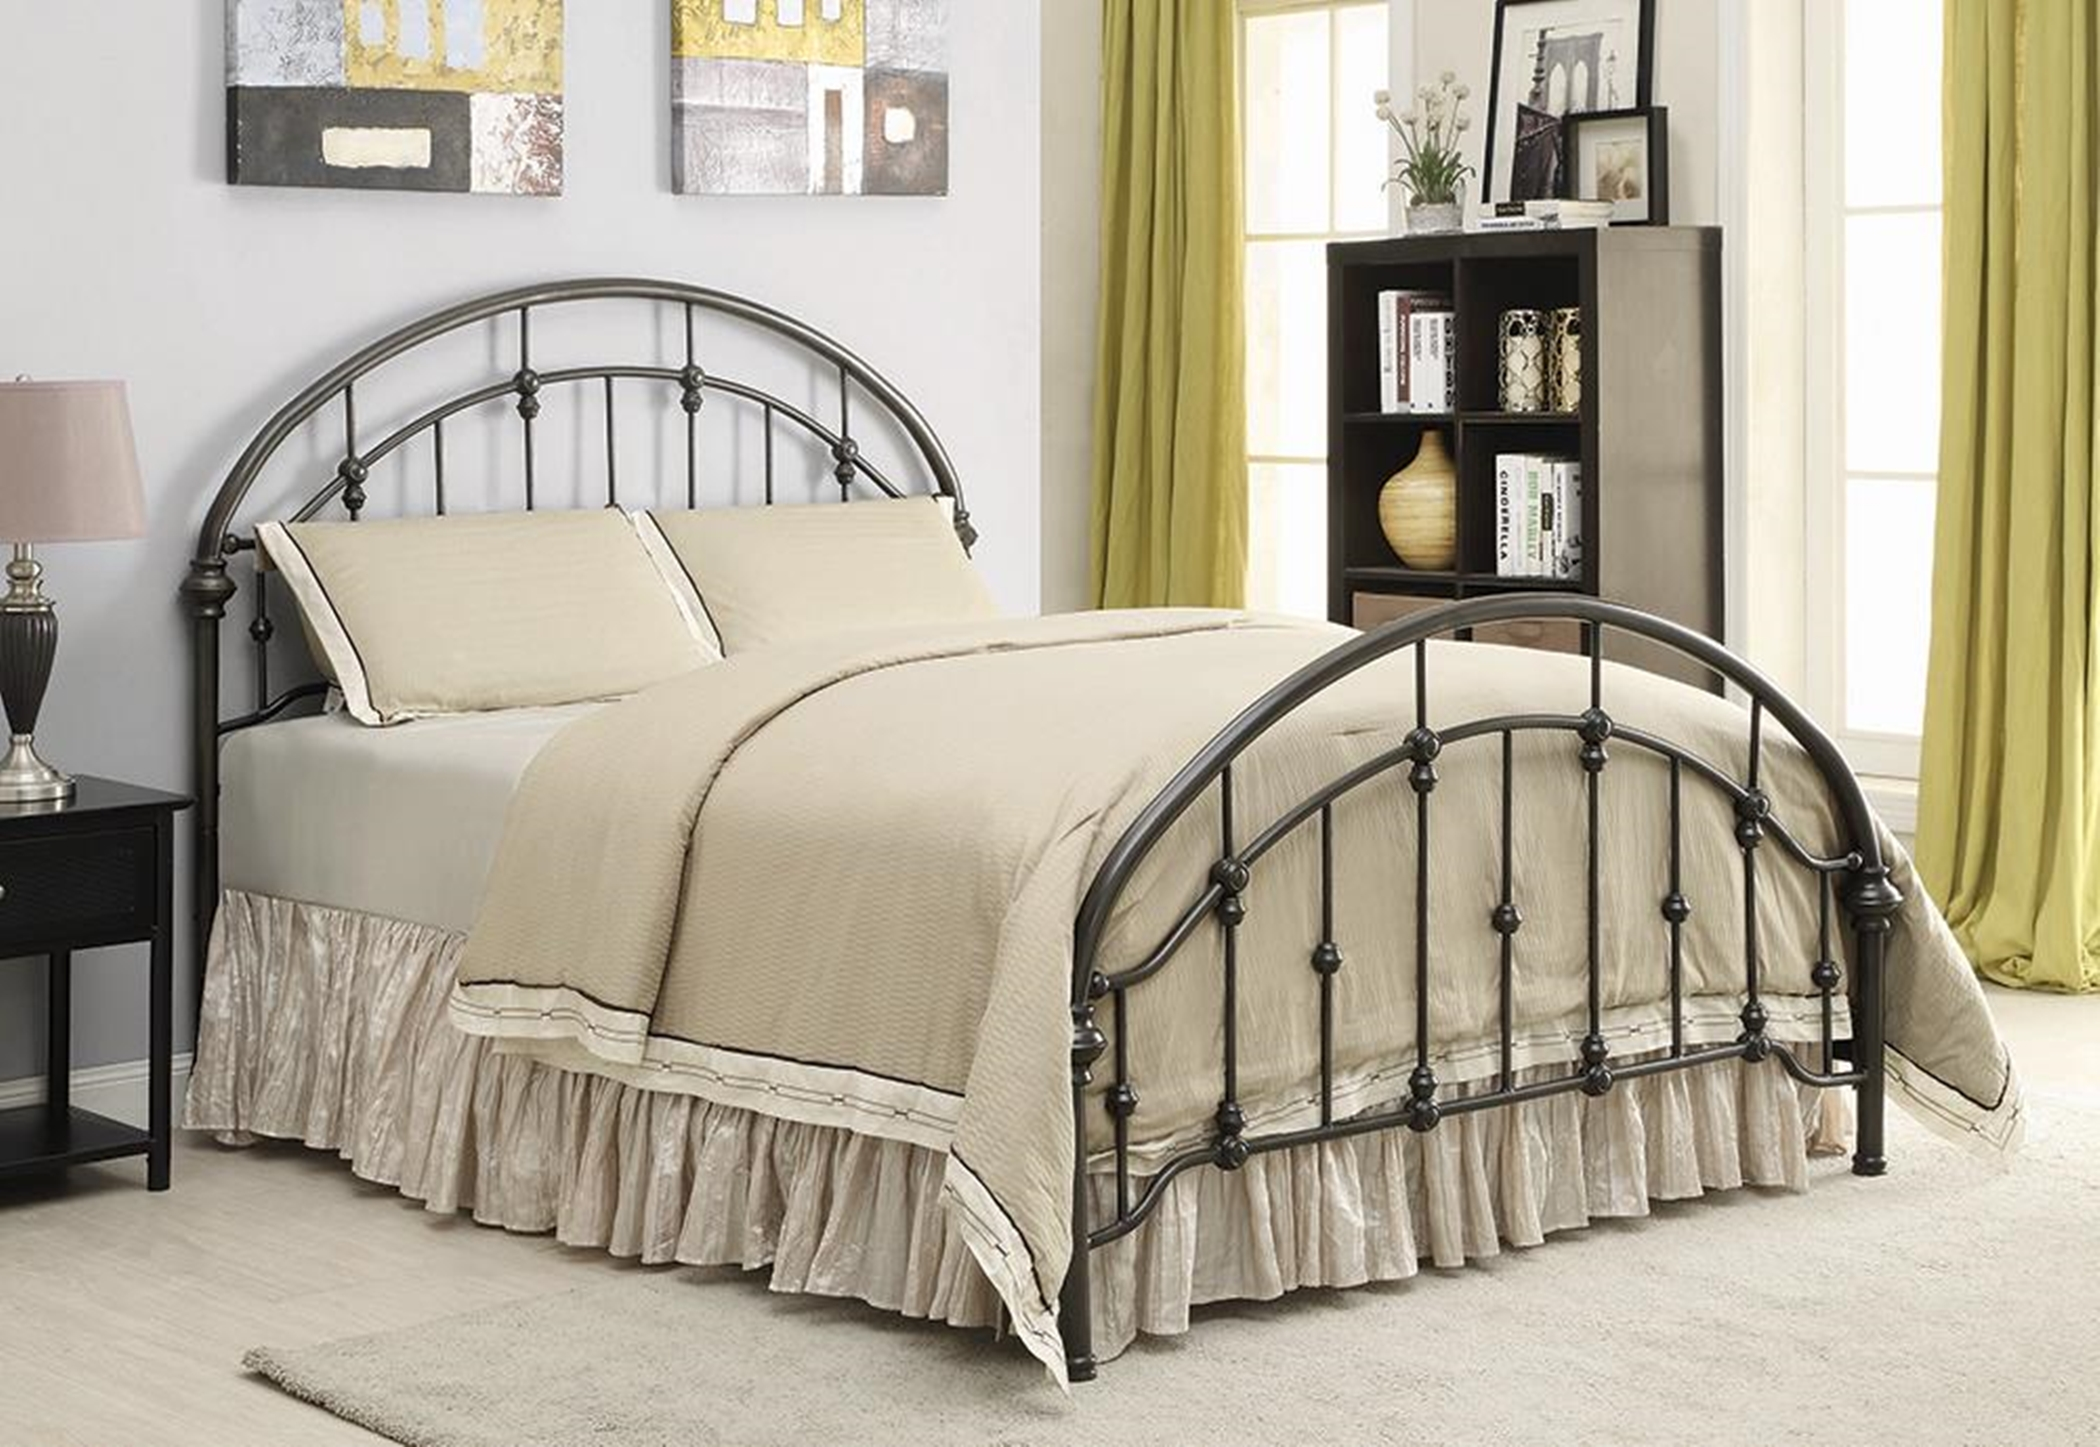 Maywood Black Metal E. King Bed